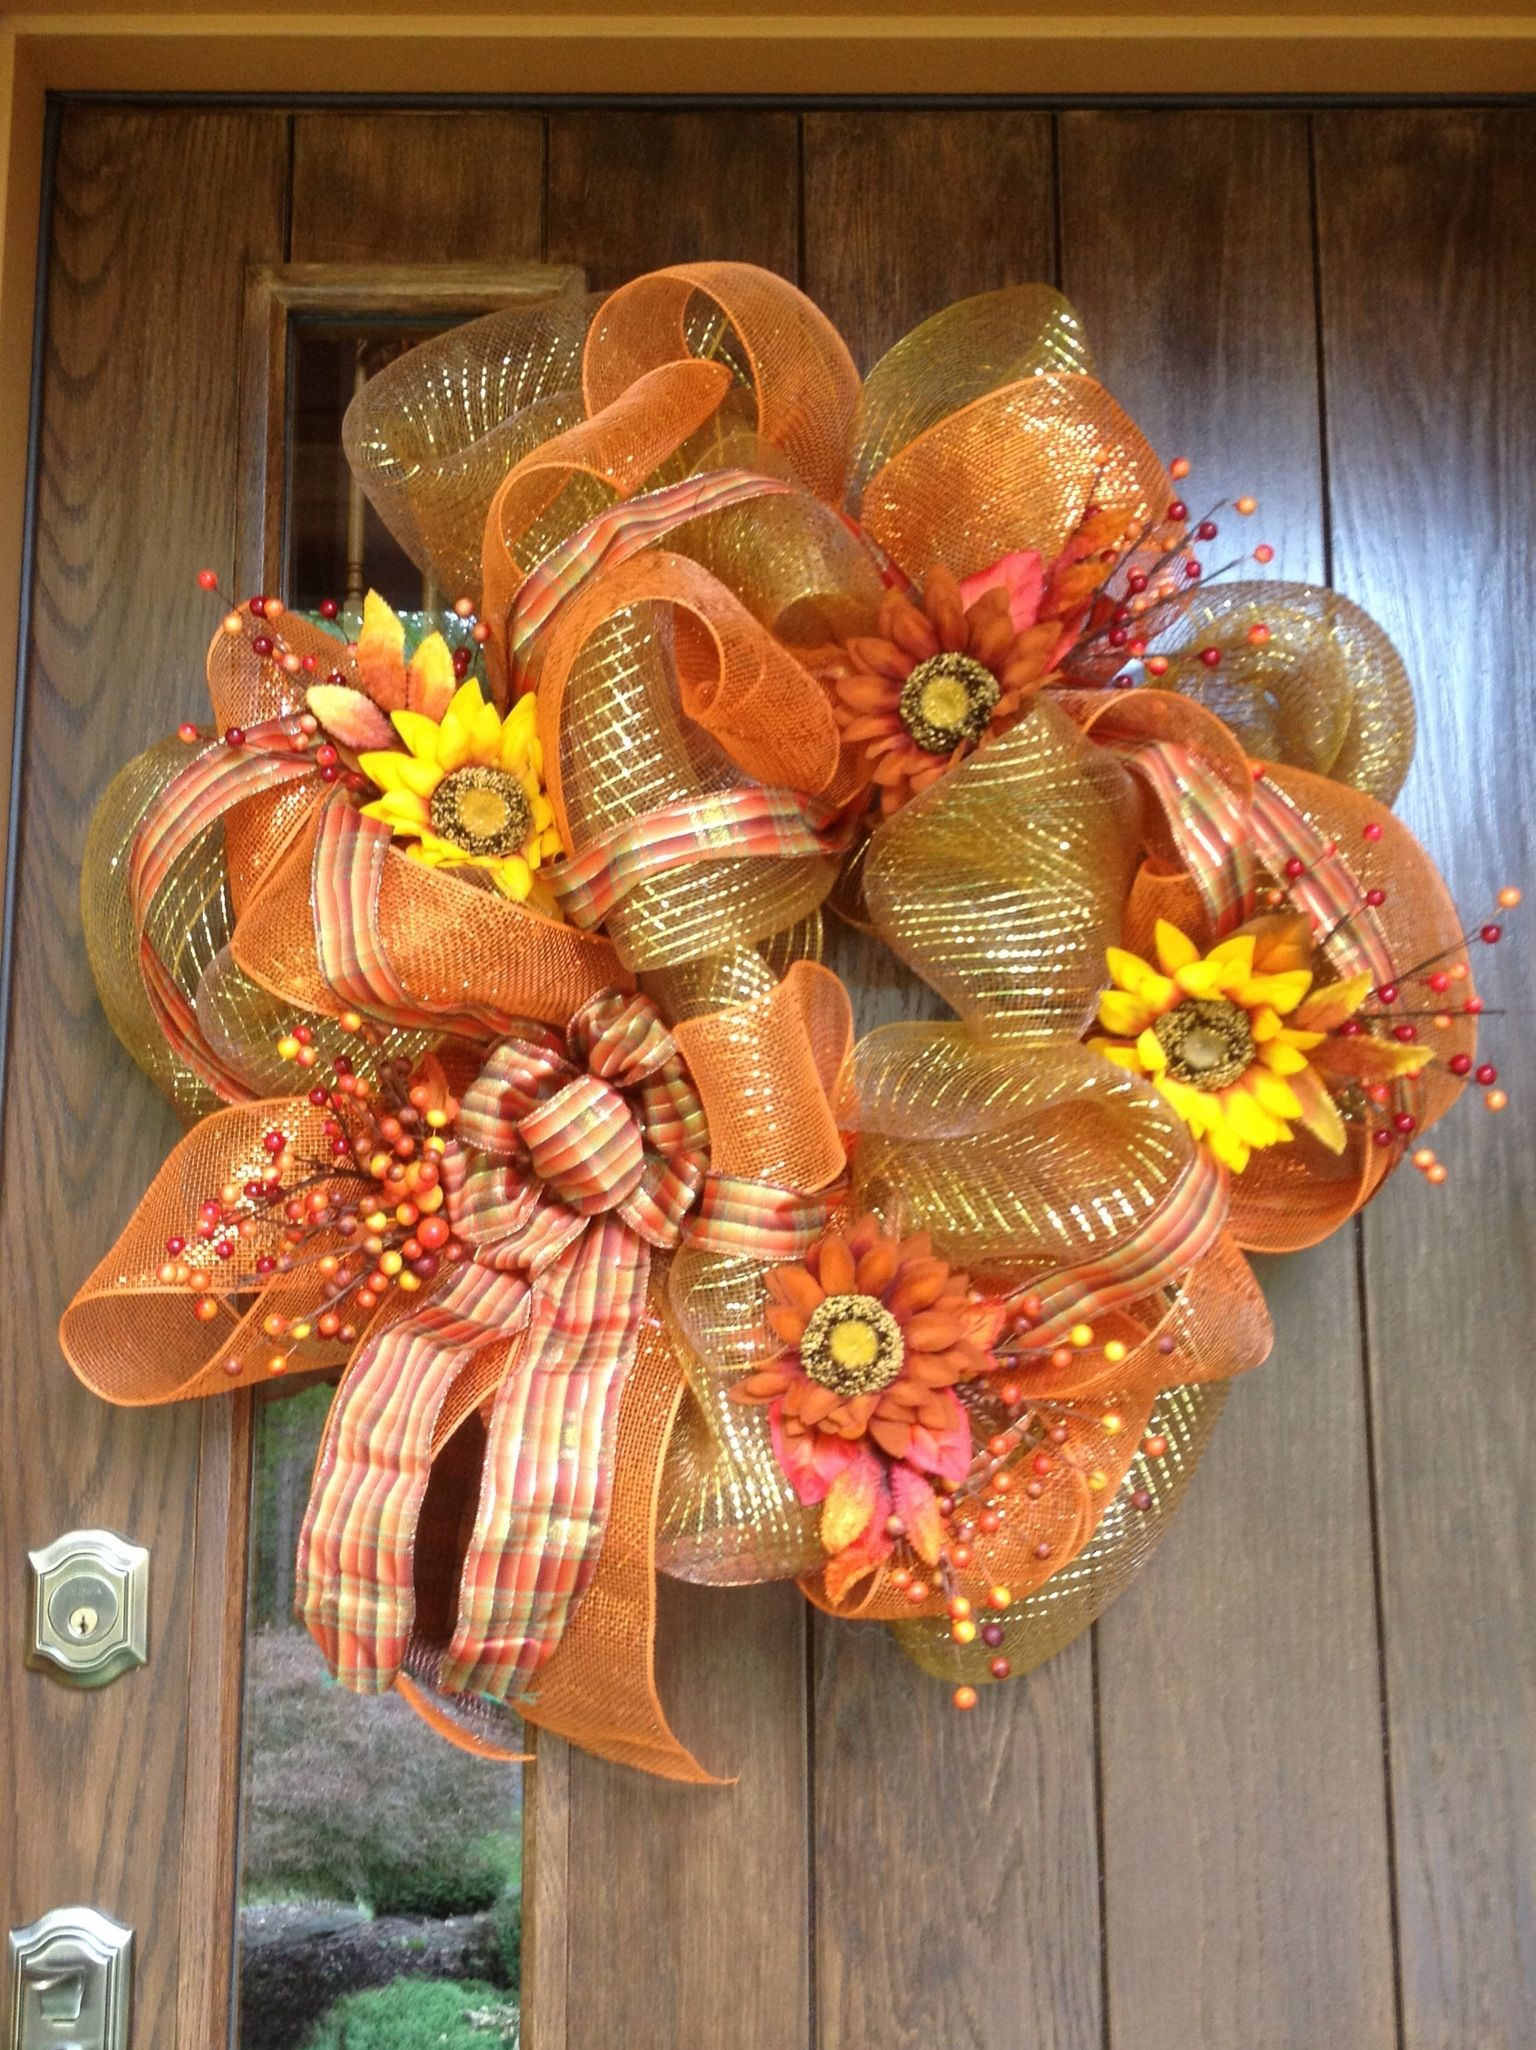 Fall and halloween crafts on pinterest just b cause for Fall diy crafts pinterest